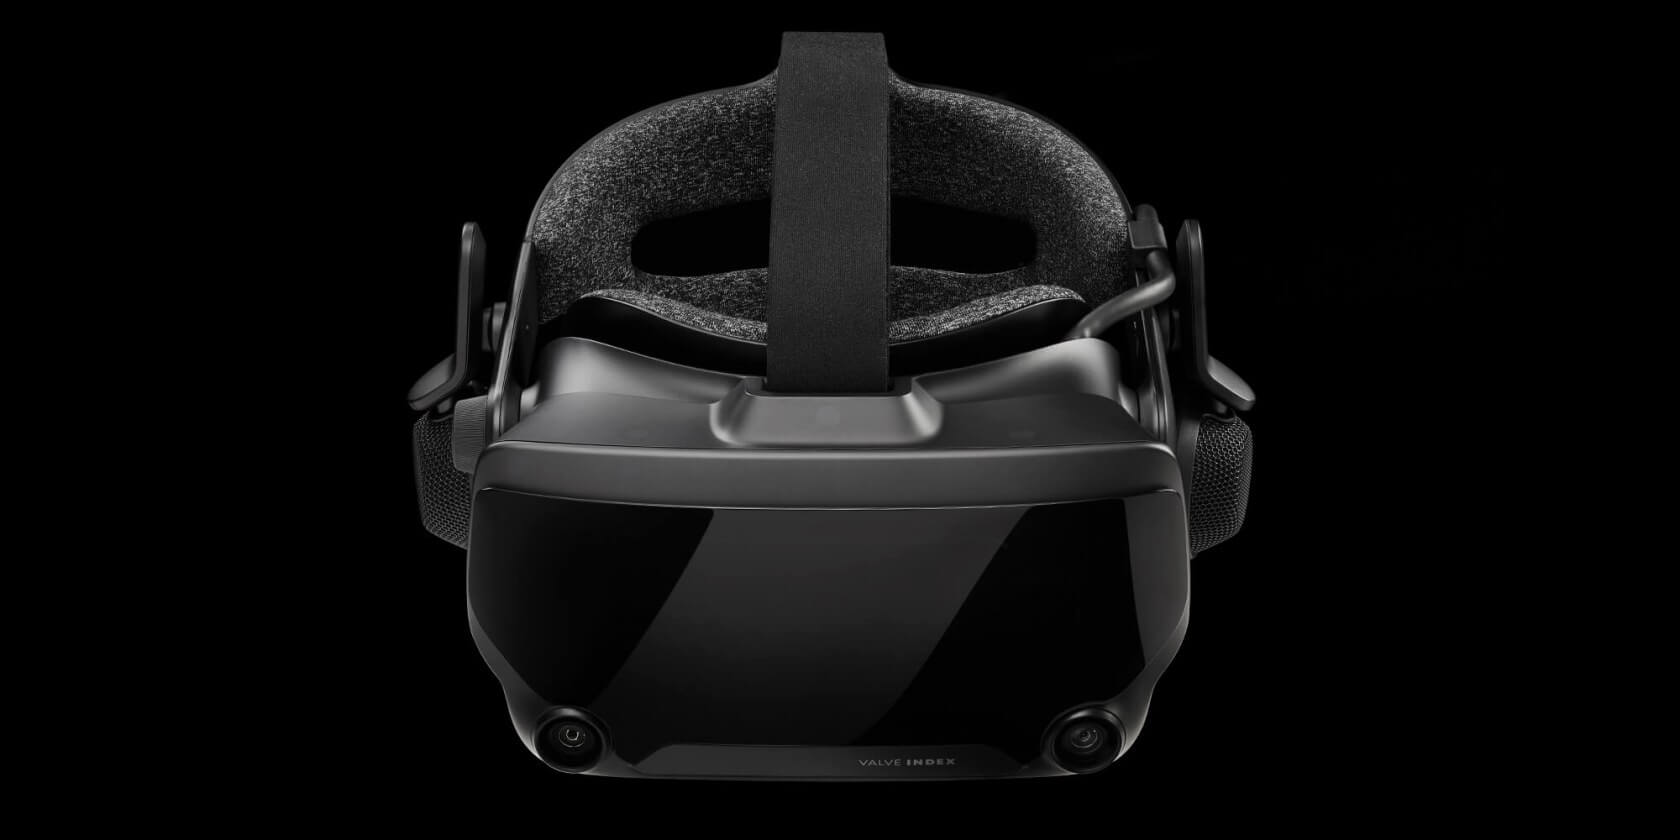 Valve reveals its 'Index' VR headset, featuring finger-tracking controllers, a 120Hz display, and more